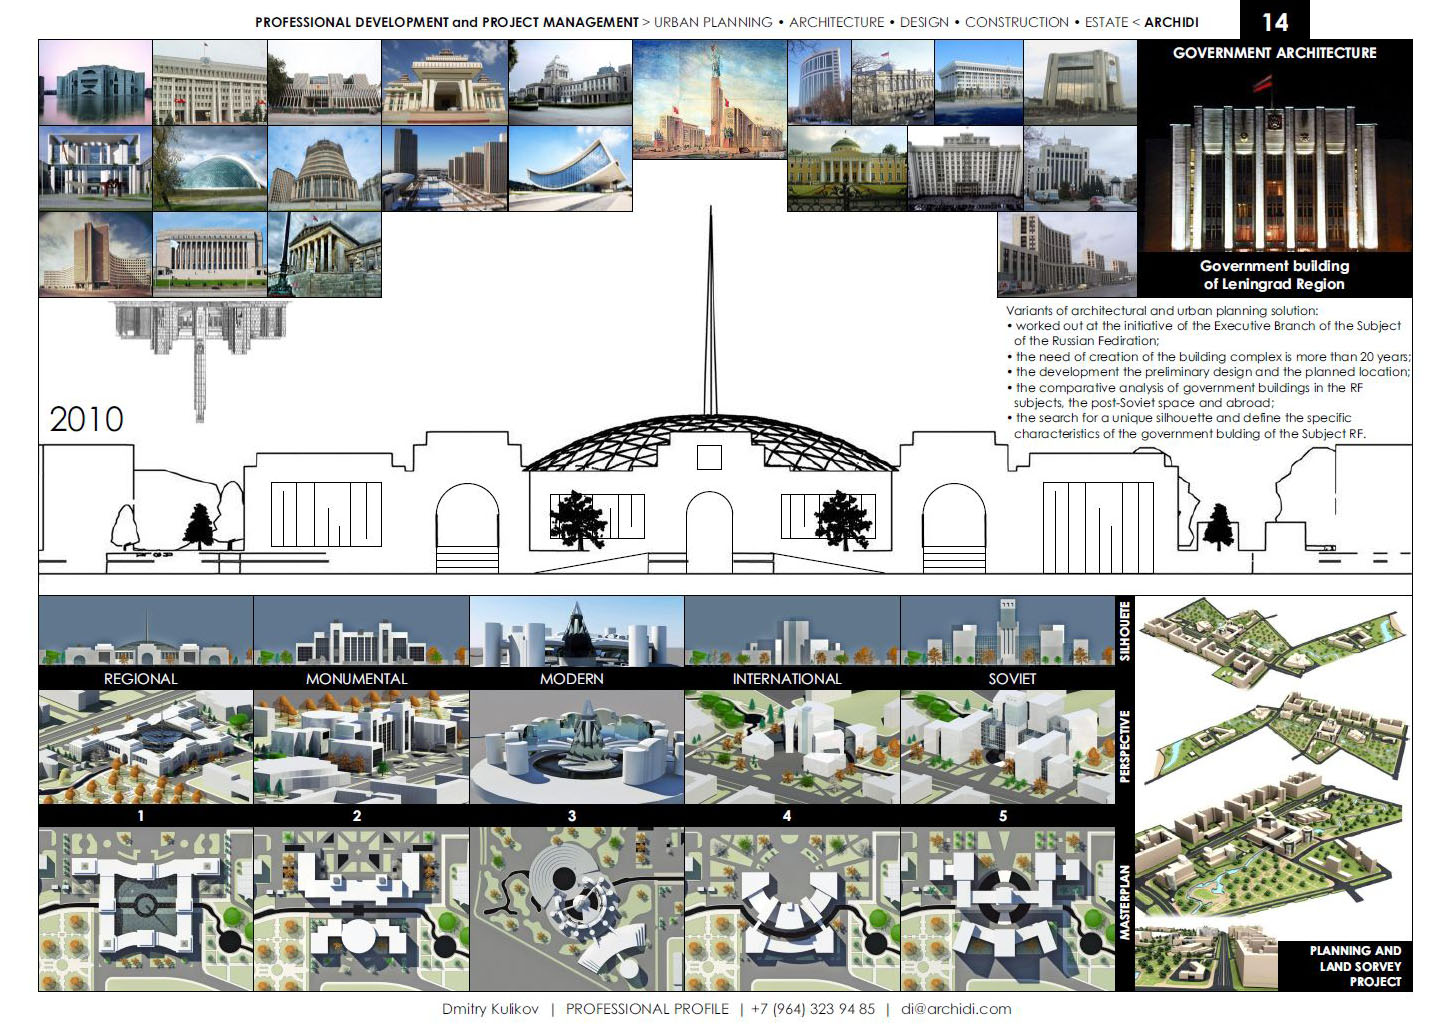 archidi.com - PORTFOLIO - Government architecture